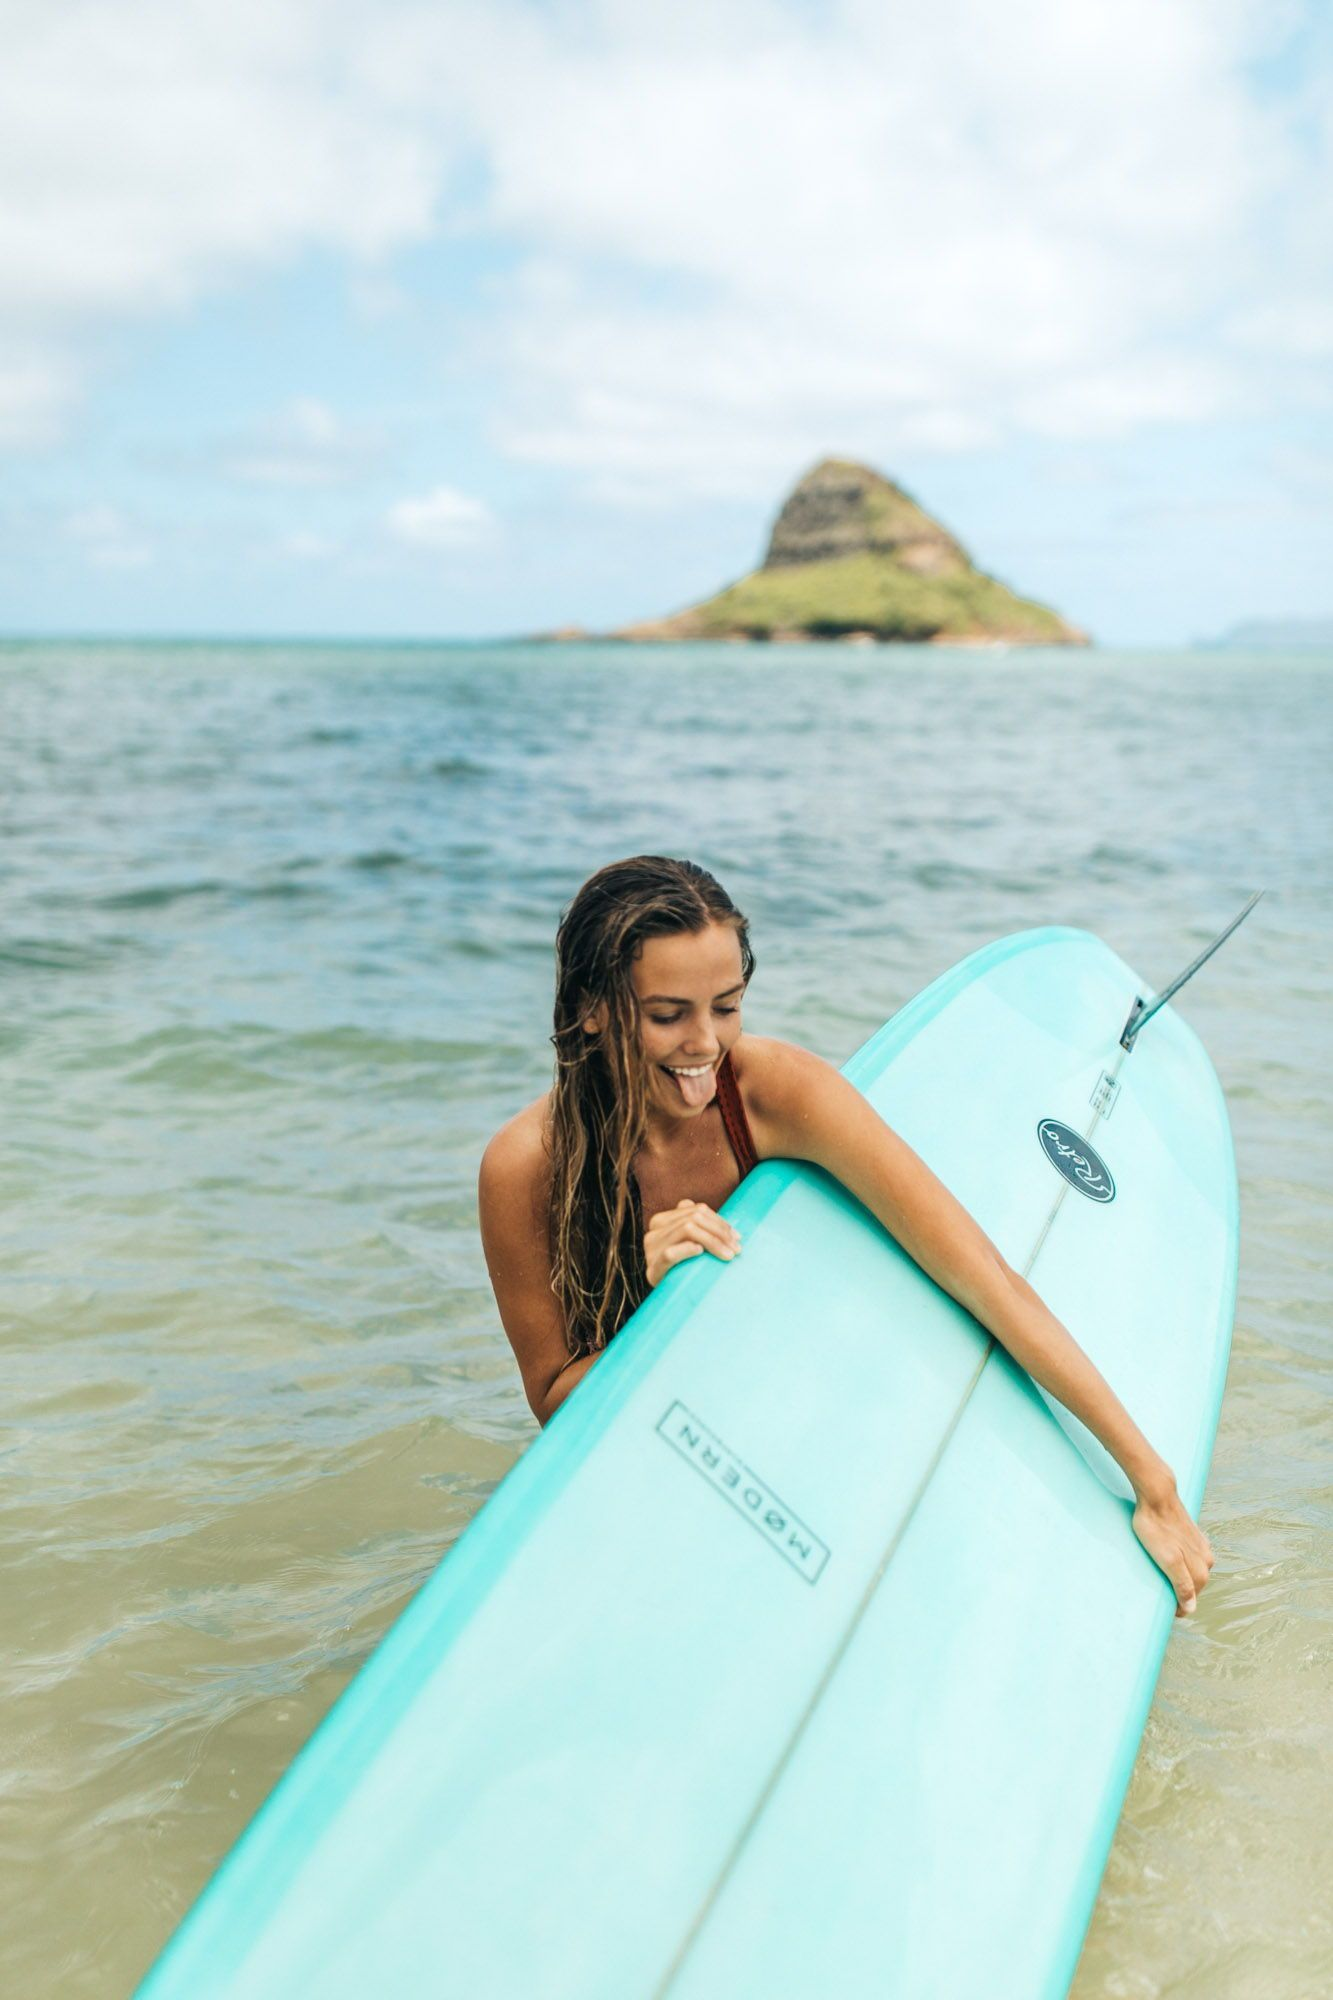 Pin by Heather Streibick on Beach Life in 2019 | Surfing